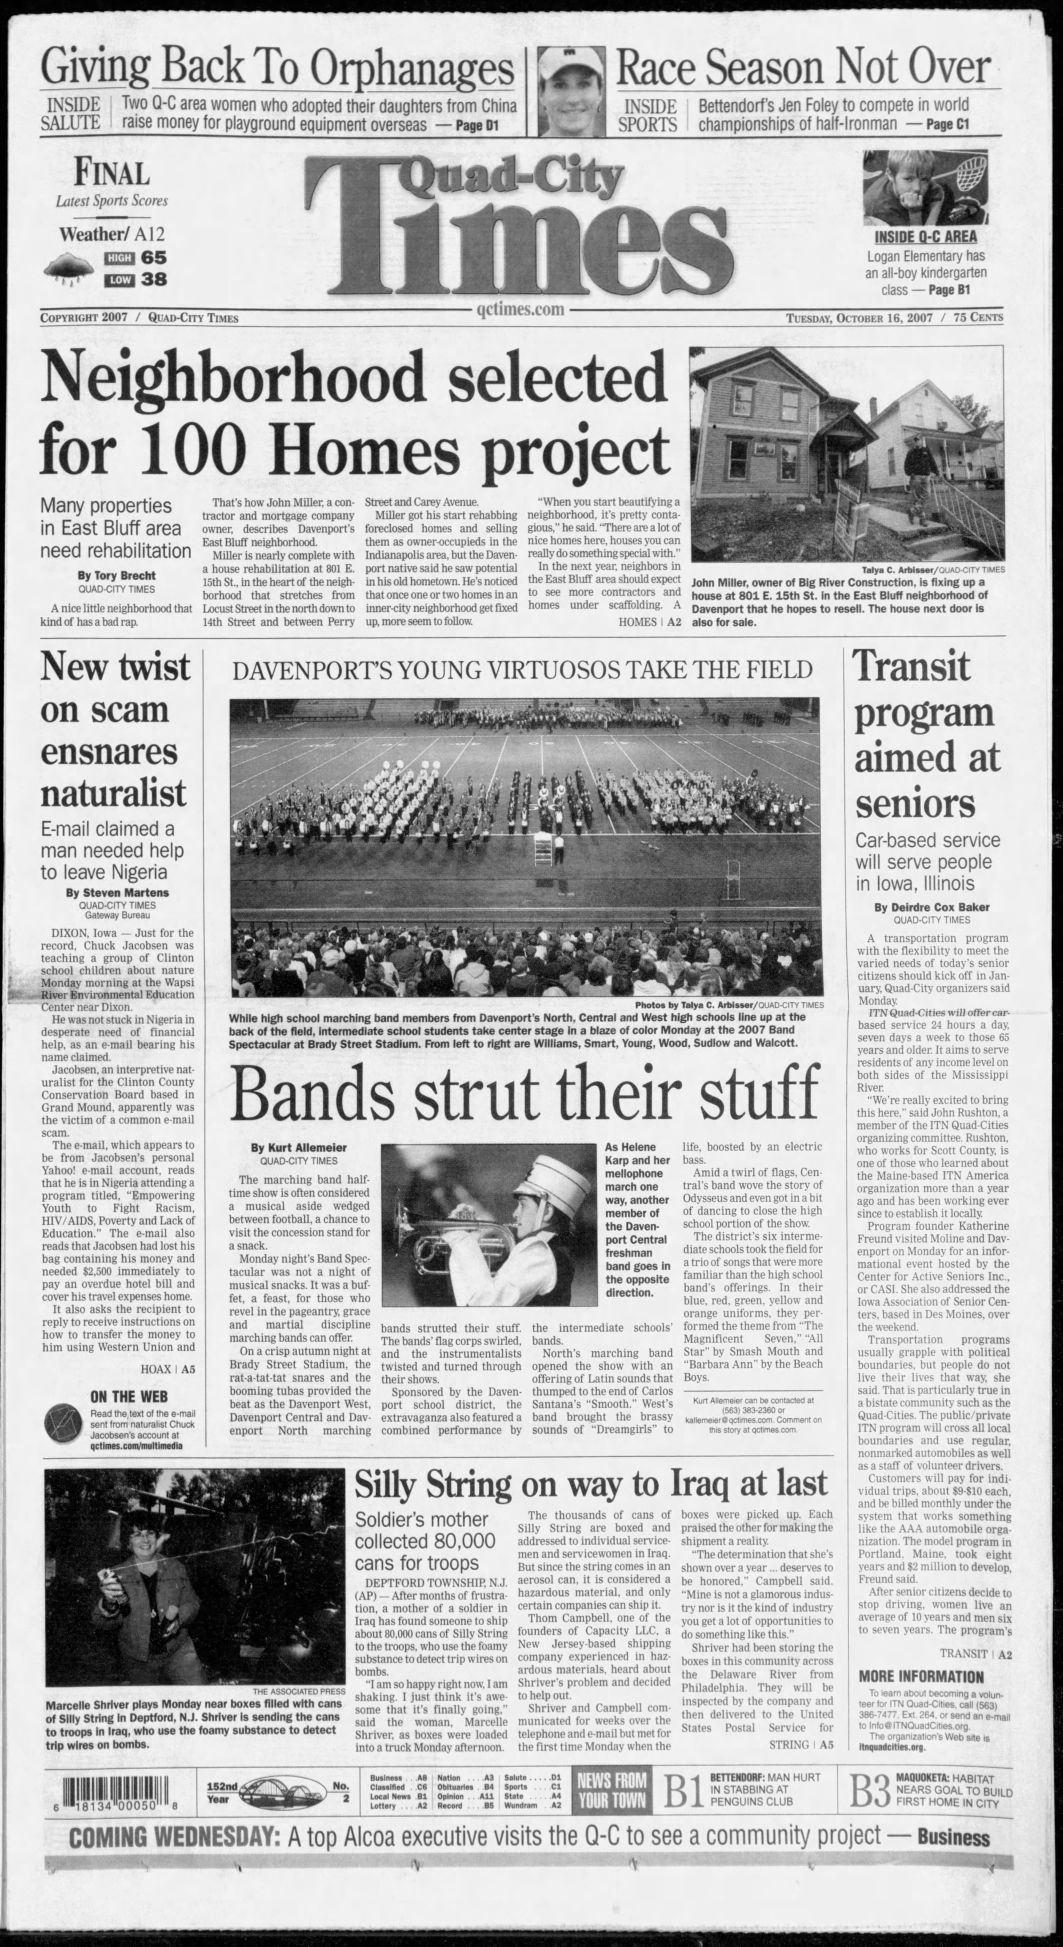 Oct. 16, 2007 Page A1